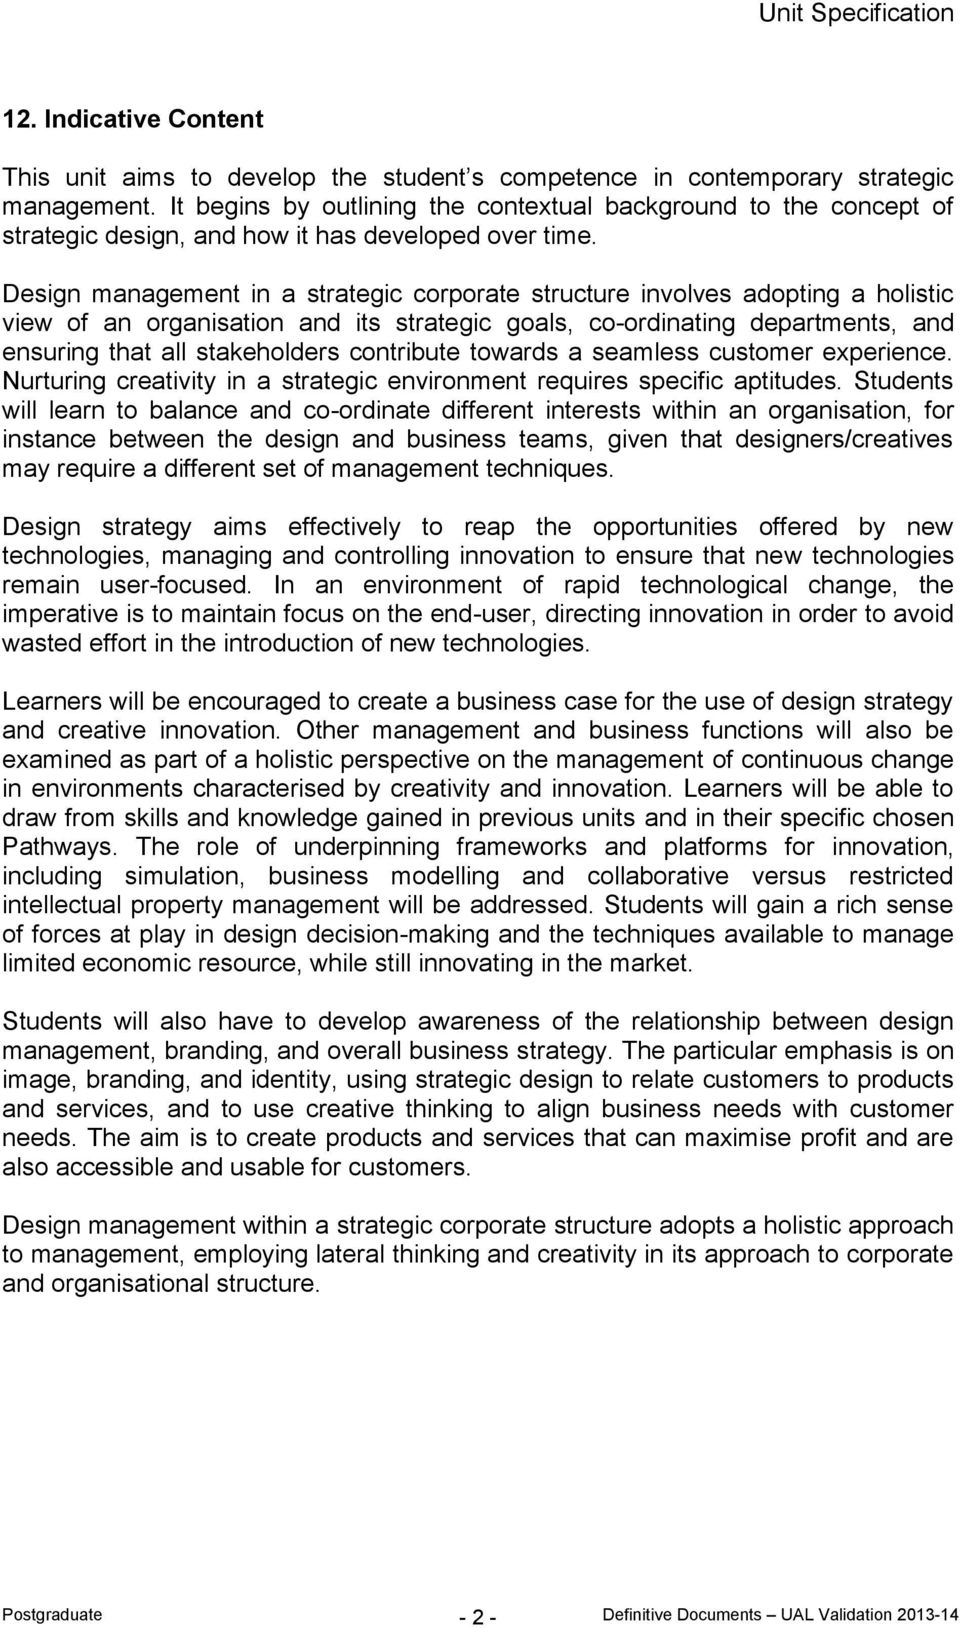 Design management in a strategic corporate structure involves adopting a holistic view of an organisation and its strategic goals, co-ordinating departments, and ensuring that all stakeholders